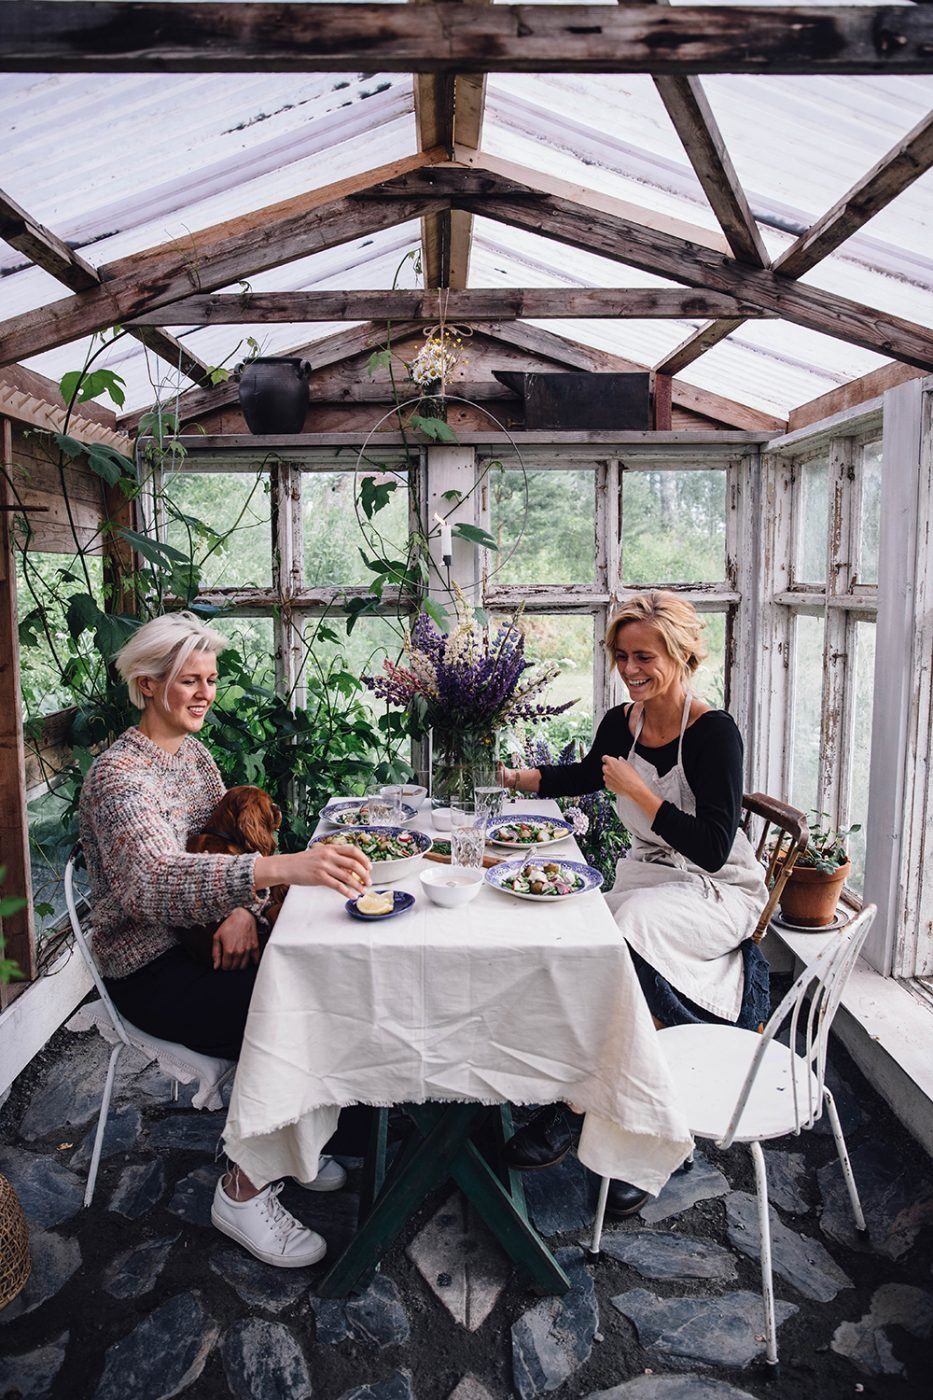 Image for Midsummer Gathering in a Greenhouse with a Potato-Peas-Salad and a delicious Honey-Mustard-Dressing